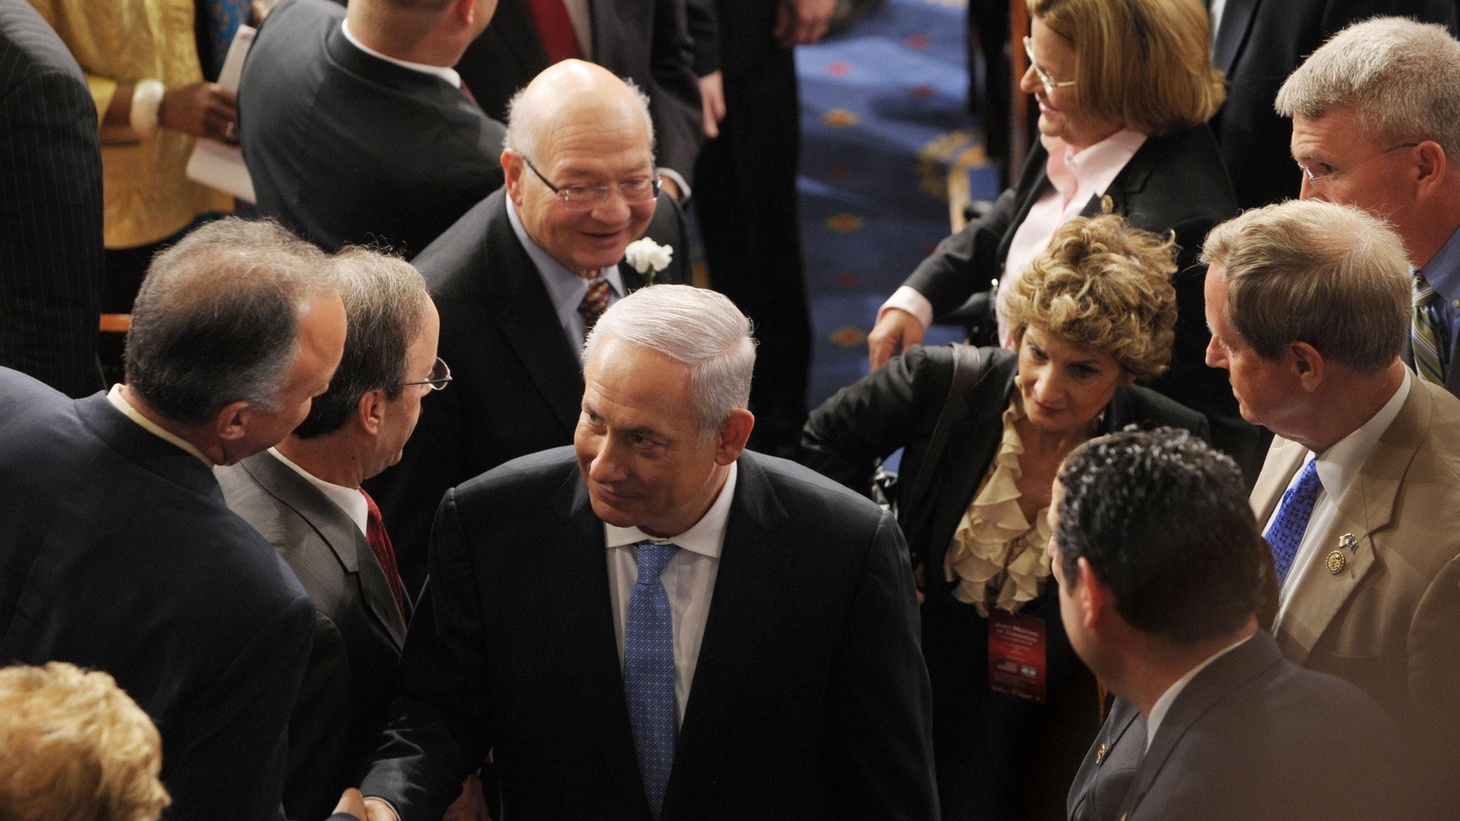 Israeli Prime Minister Benjamin Netanyahu addressed an enthusiastic joint session of Congress today, promising compromises to make peace but not offering much hope for resuming talks with the Palestinians...